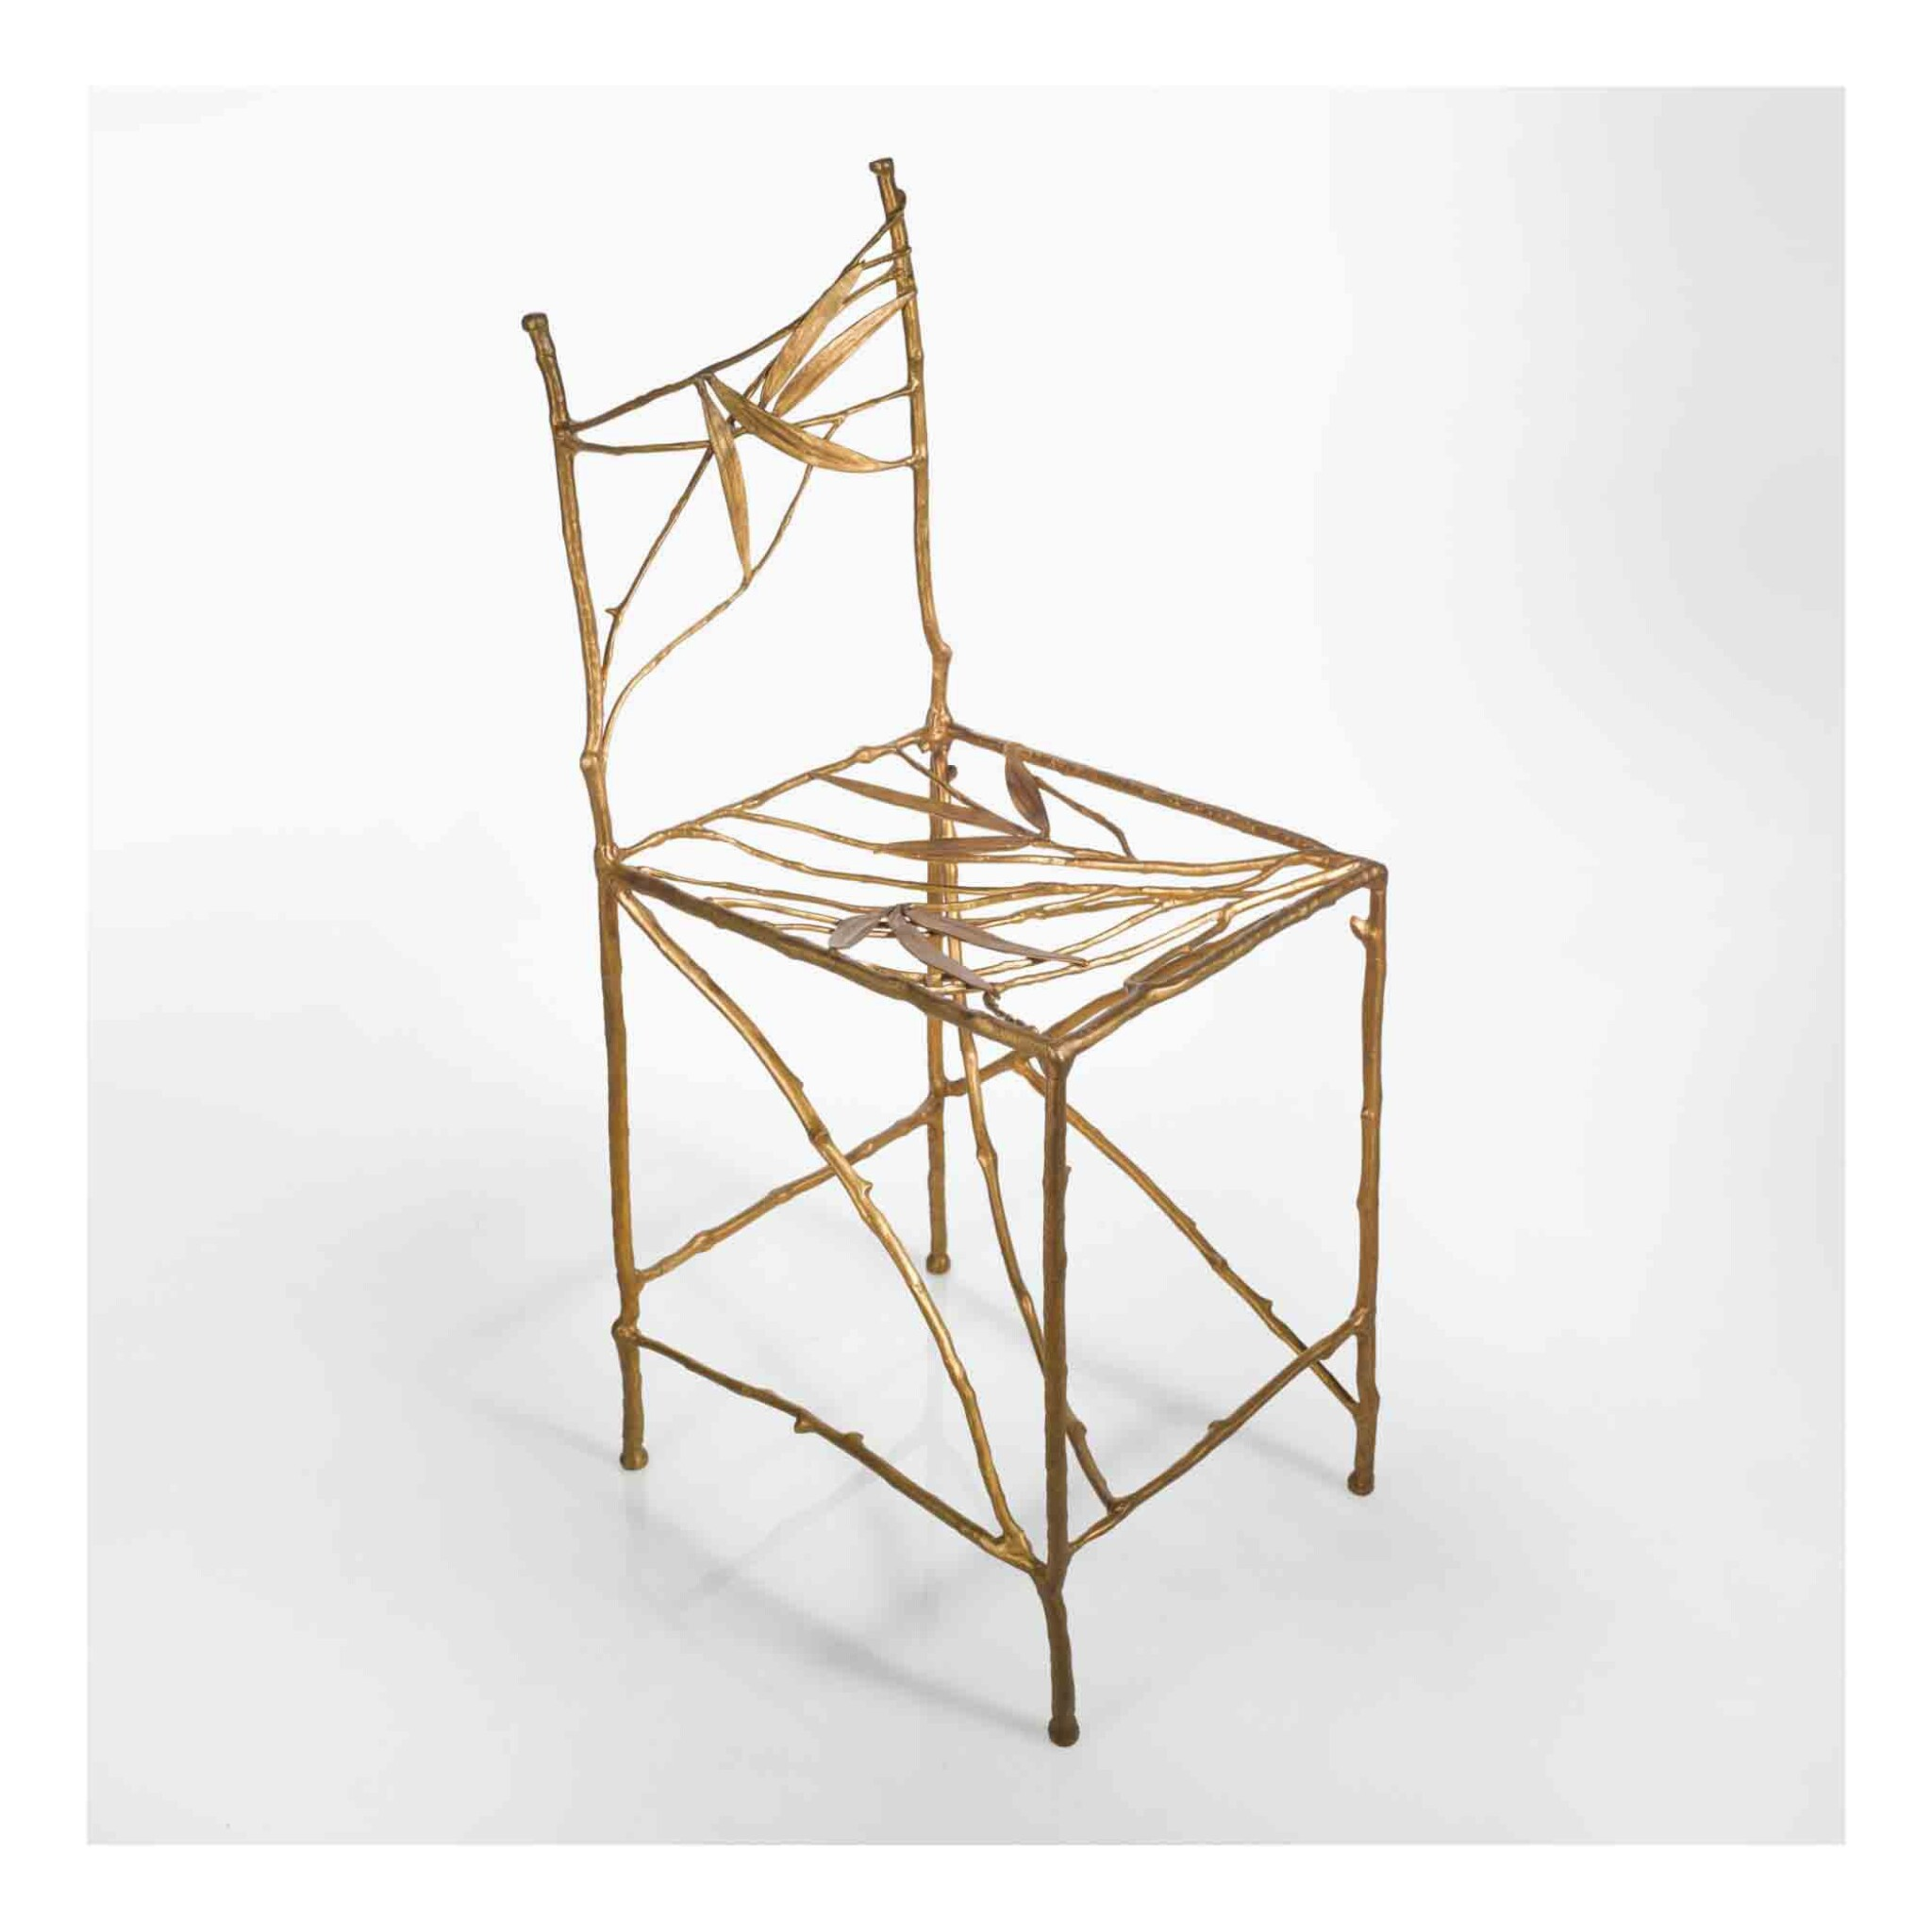 """View 1 of Lot 444. """"Bambou"""" Chair."""